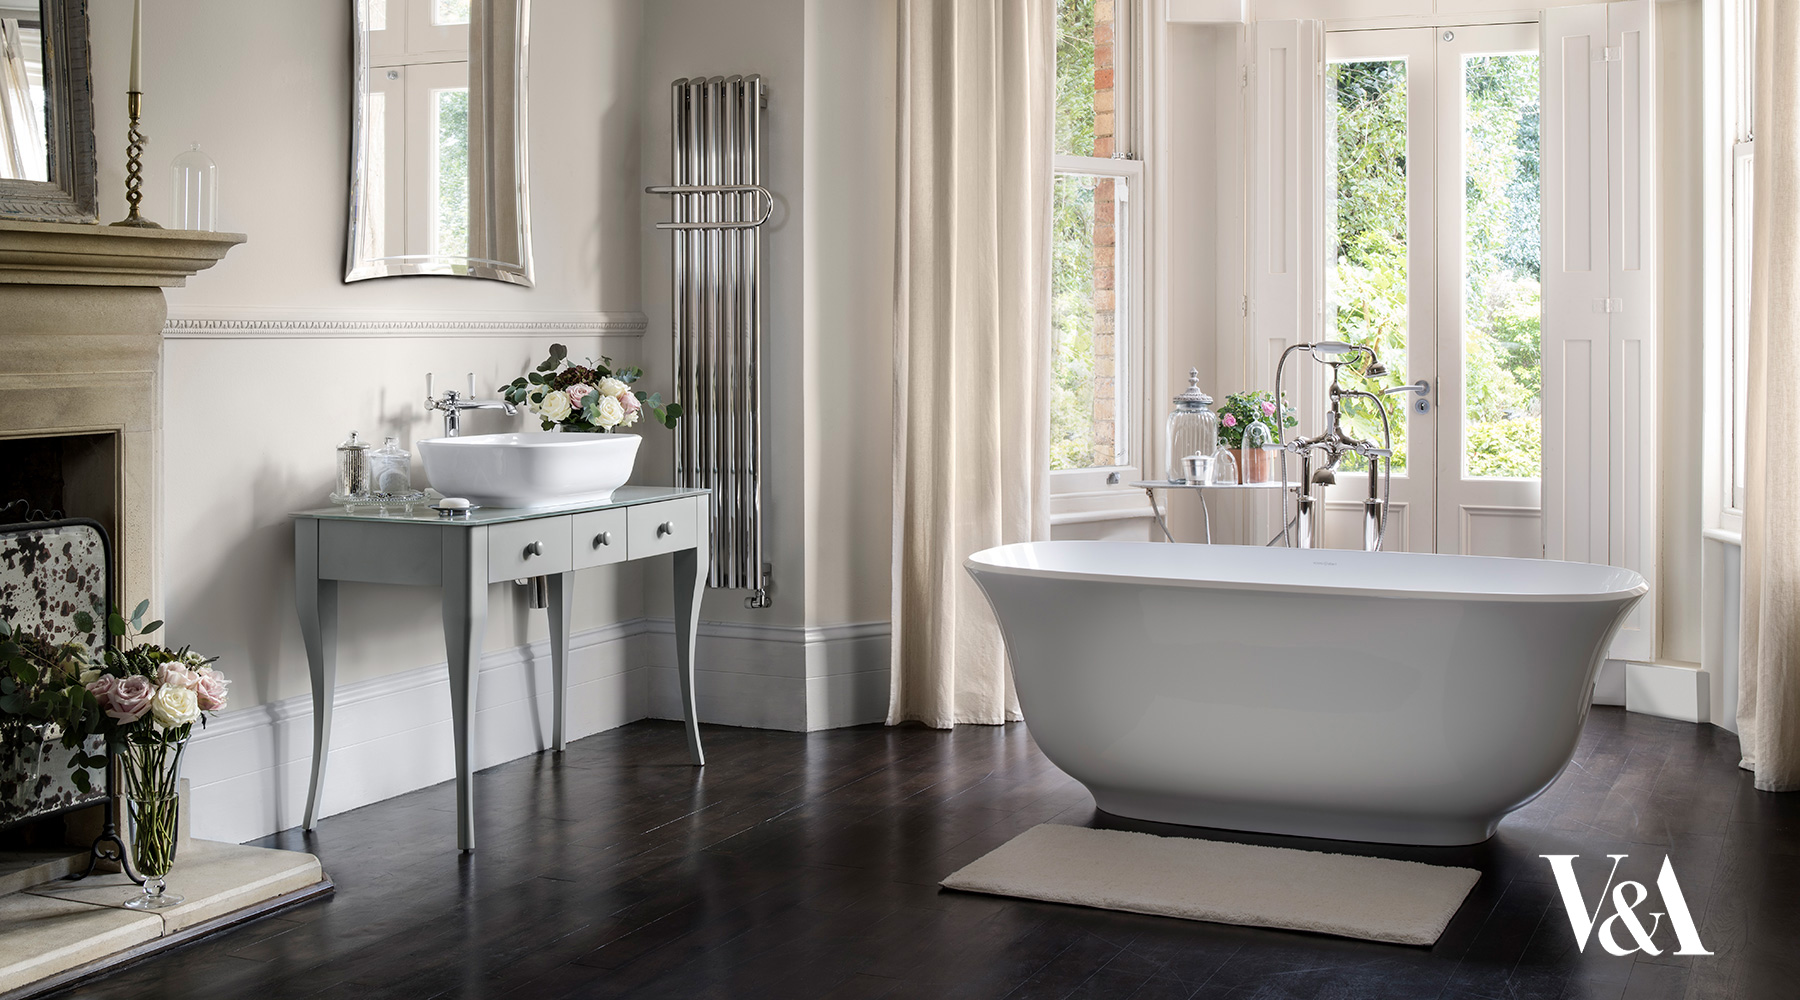 ... Selection Of Bath And Kitchen Products, Including Faucets, Hardware,  Accessories, And All Of The Many Fixtures That Work Together To Make Your  Home Or ...